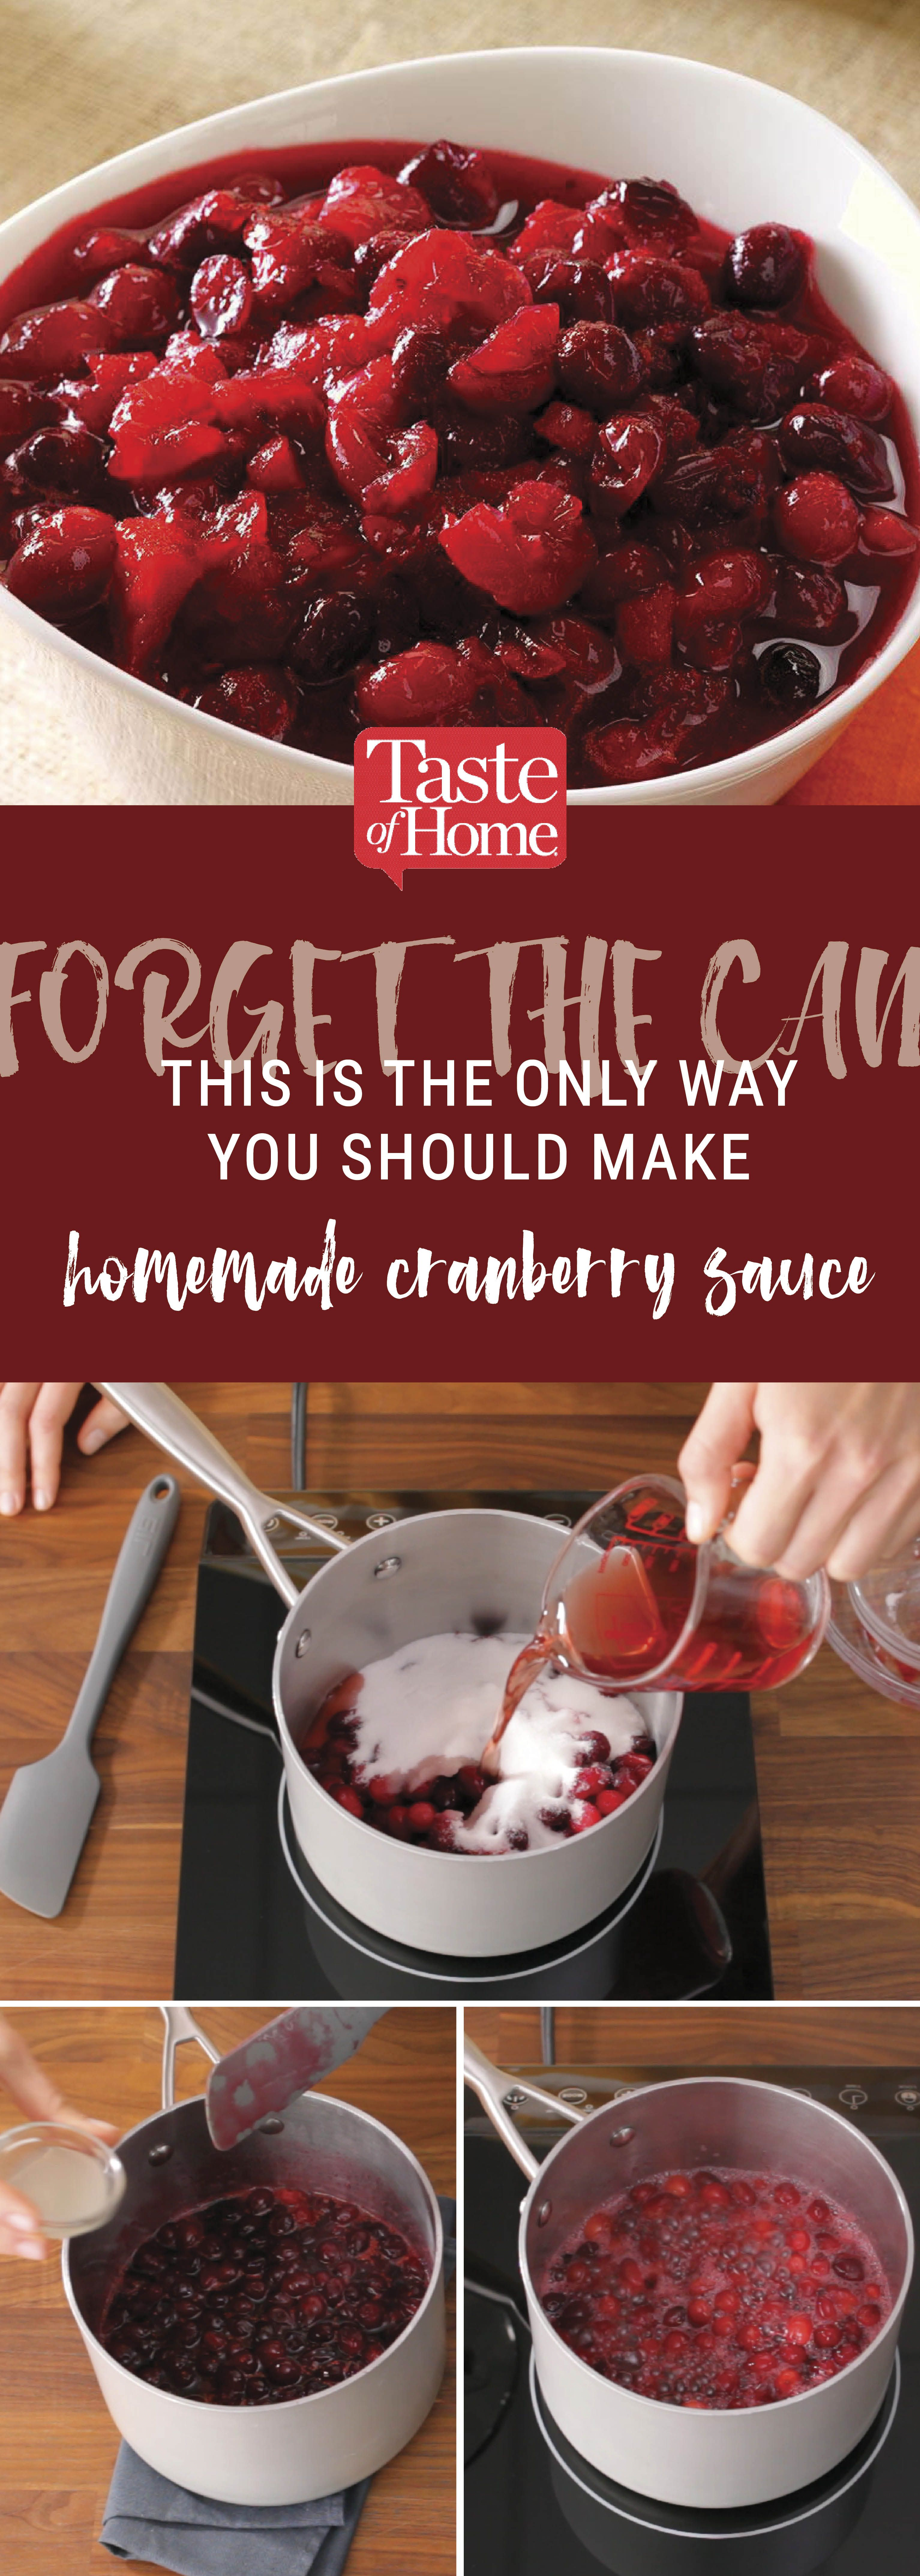 How to Make Cranberry Sauce the Old-Fashioned Way